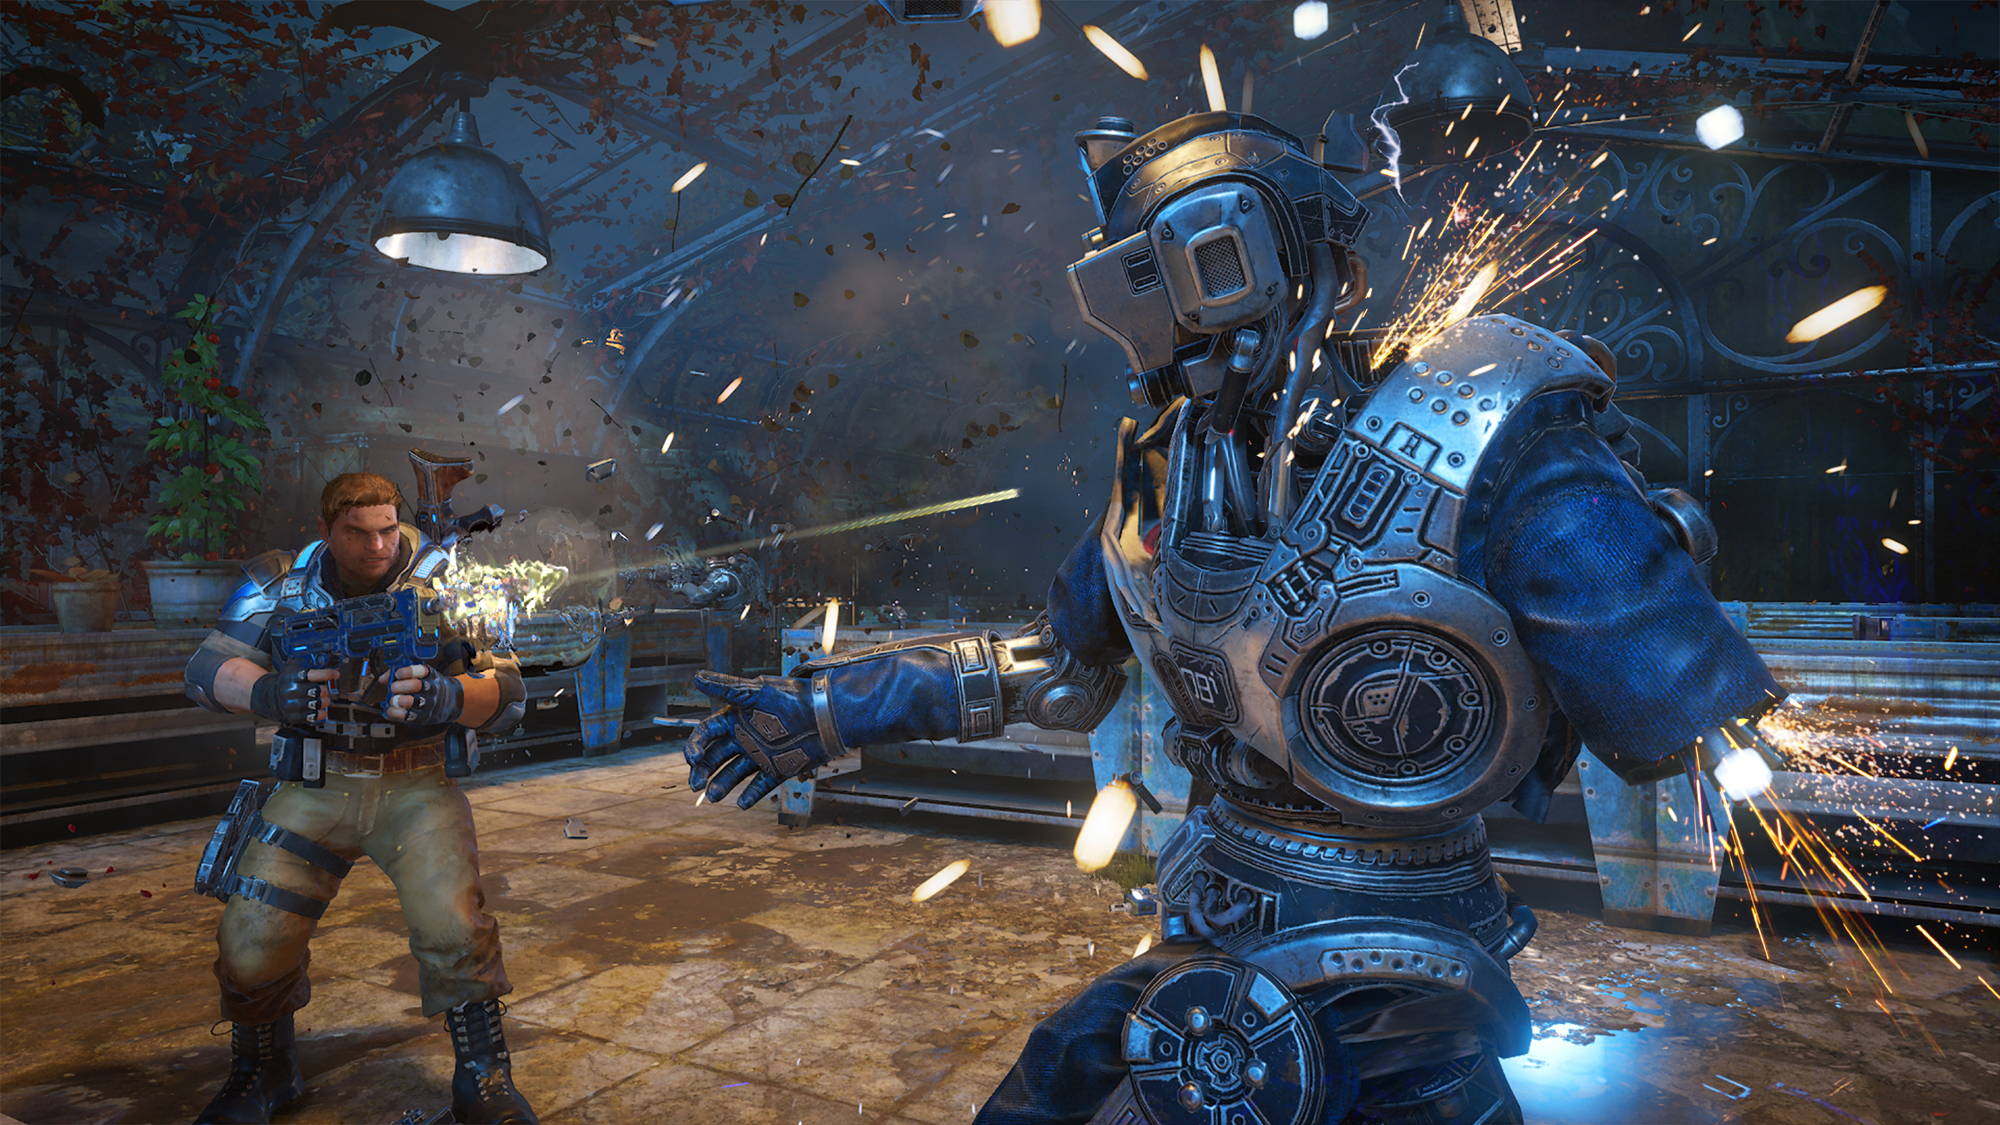 gears of war 4 xbox one review switching gears usgamer. Black Bedroom Furniture Sets. Home Design Ideas